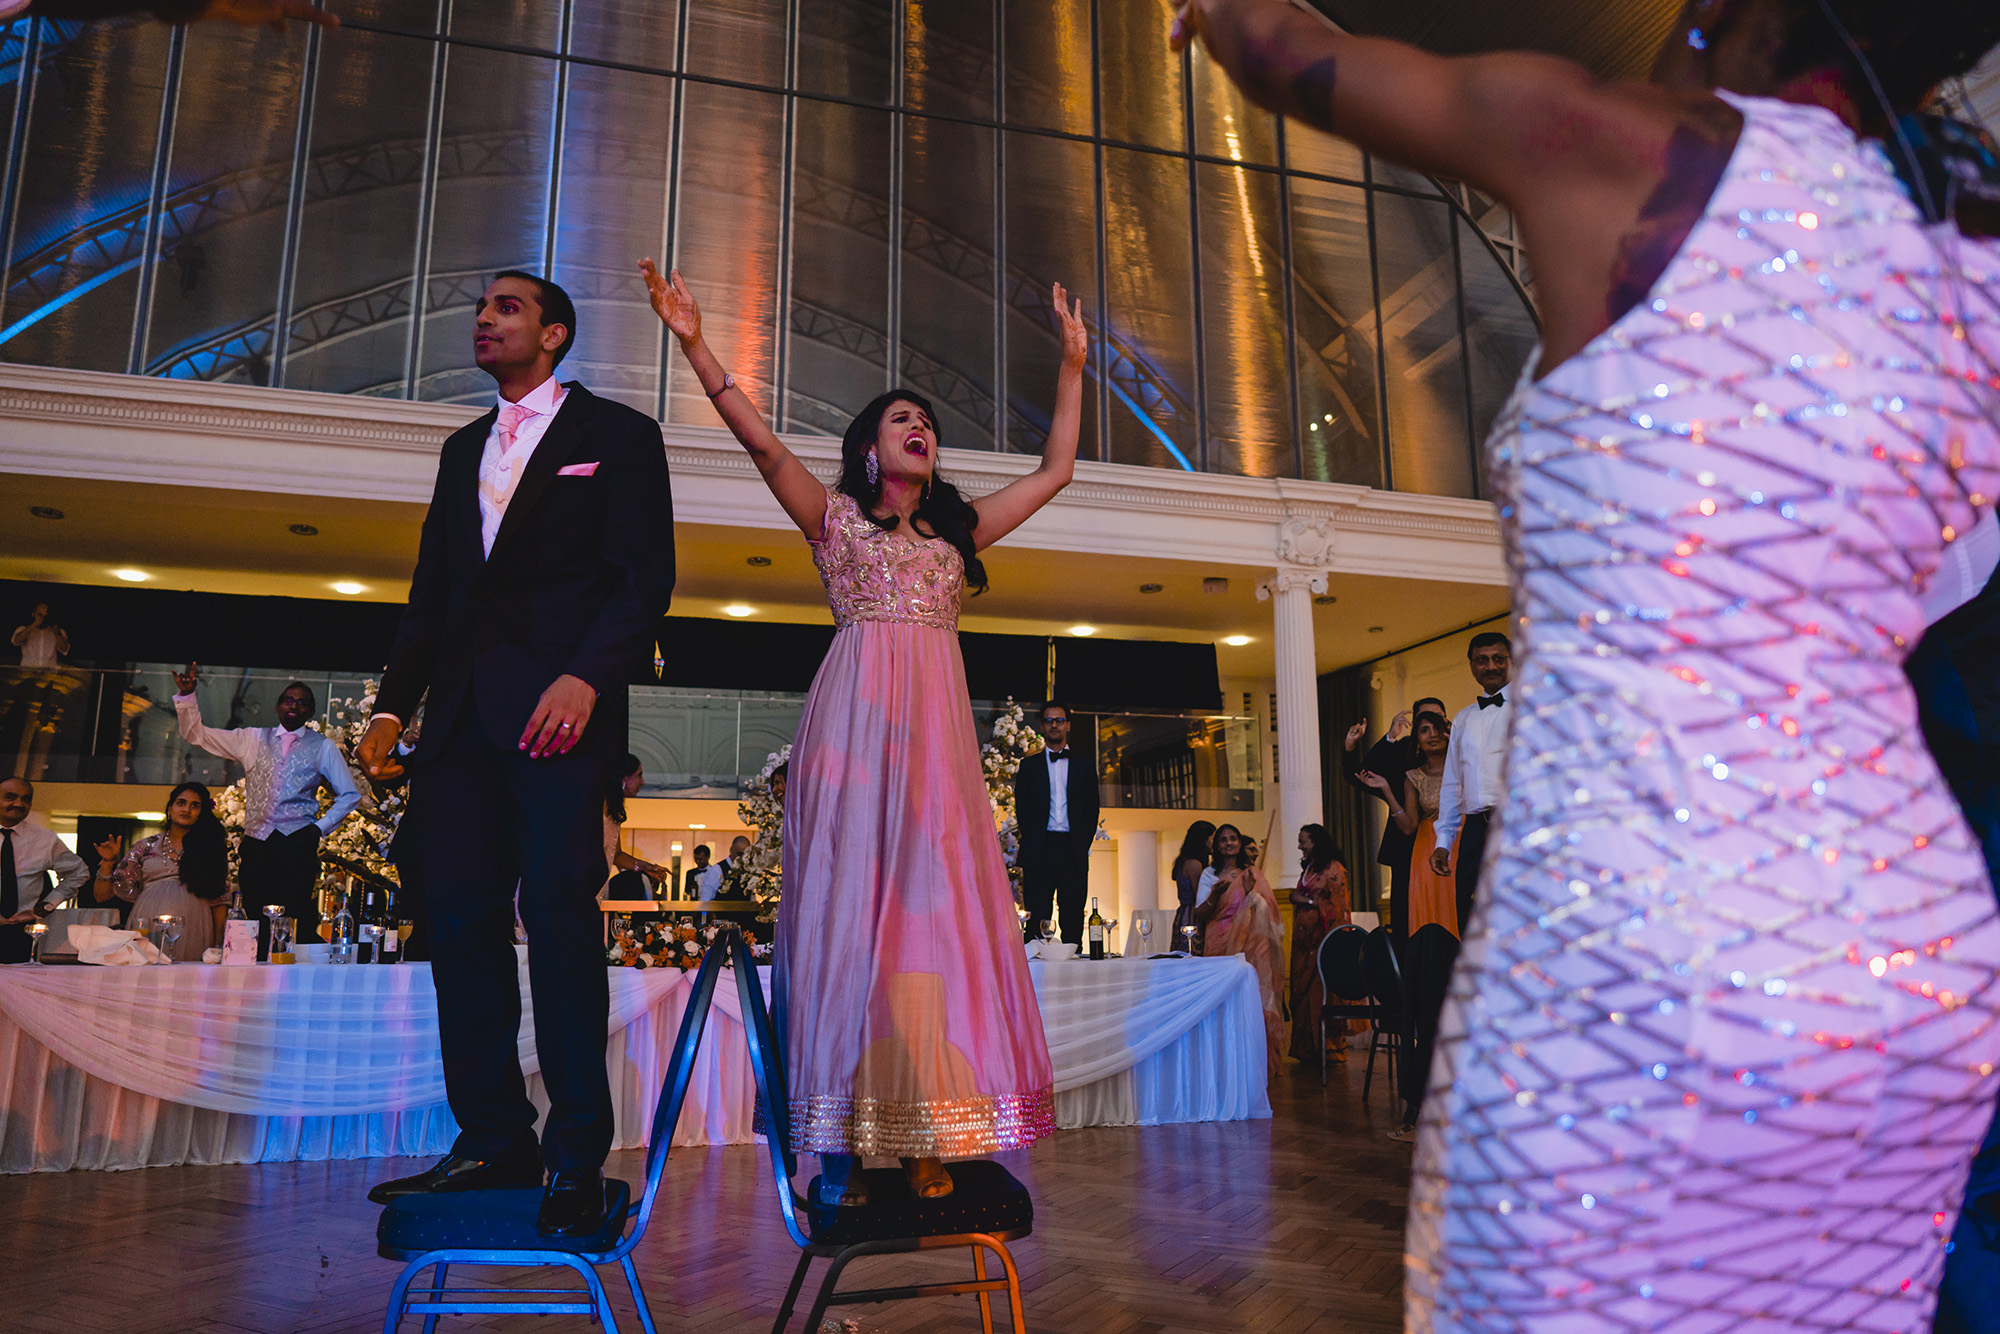 bride and groom dancing on chairs at their reception at RHH